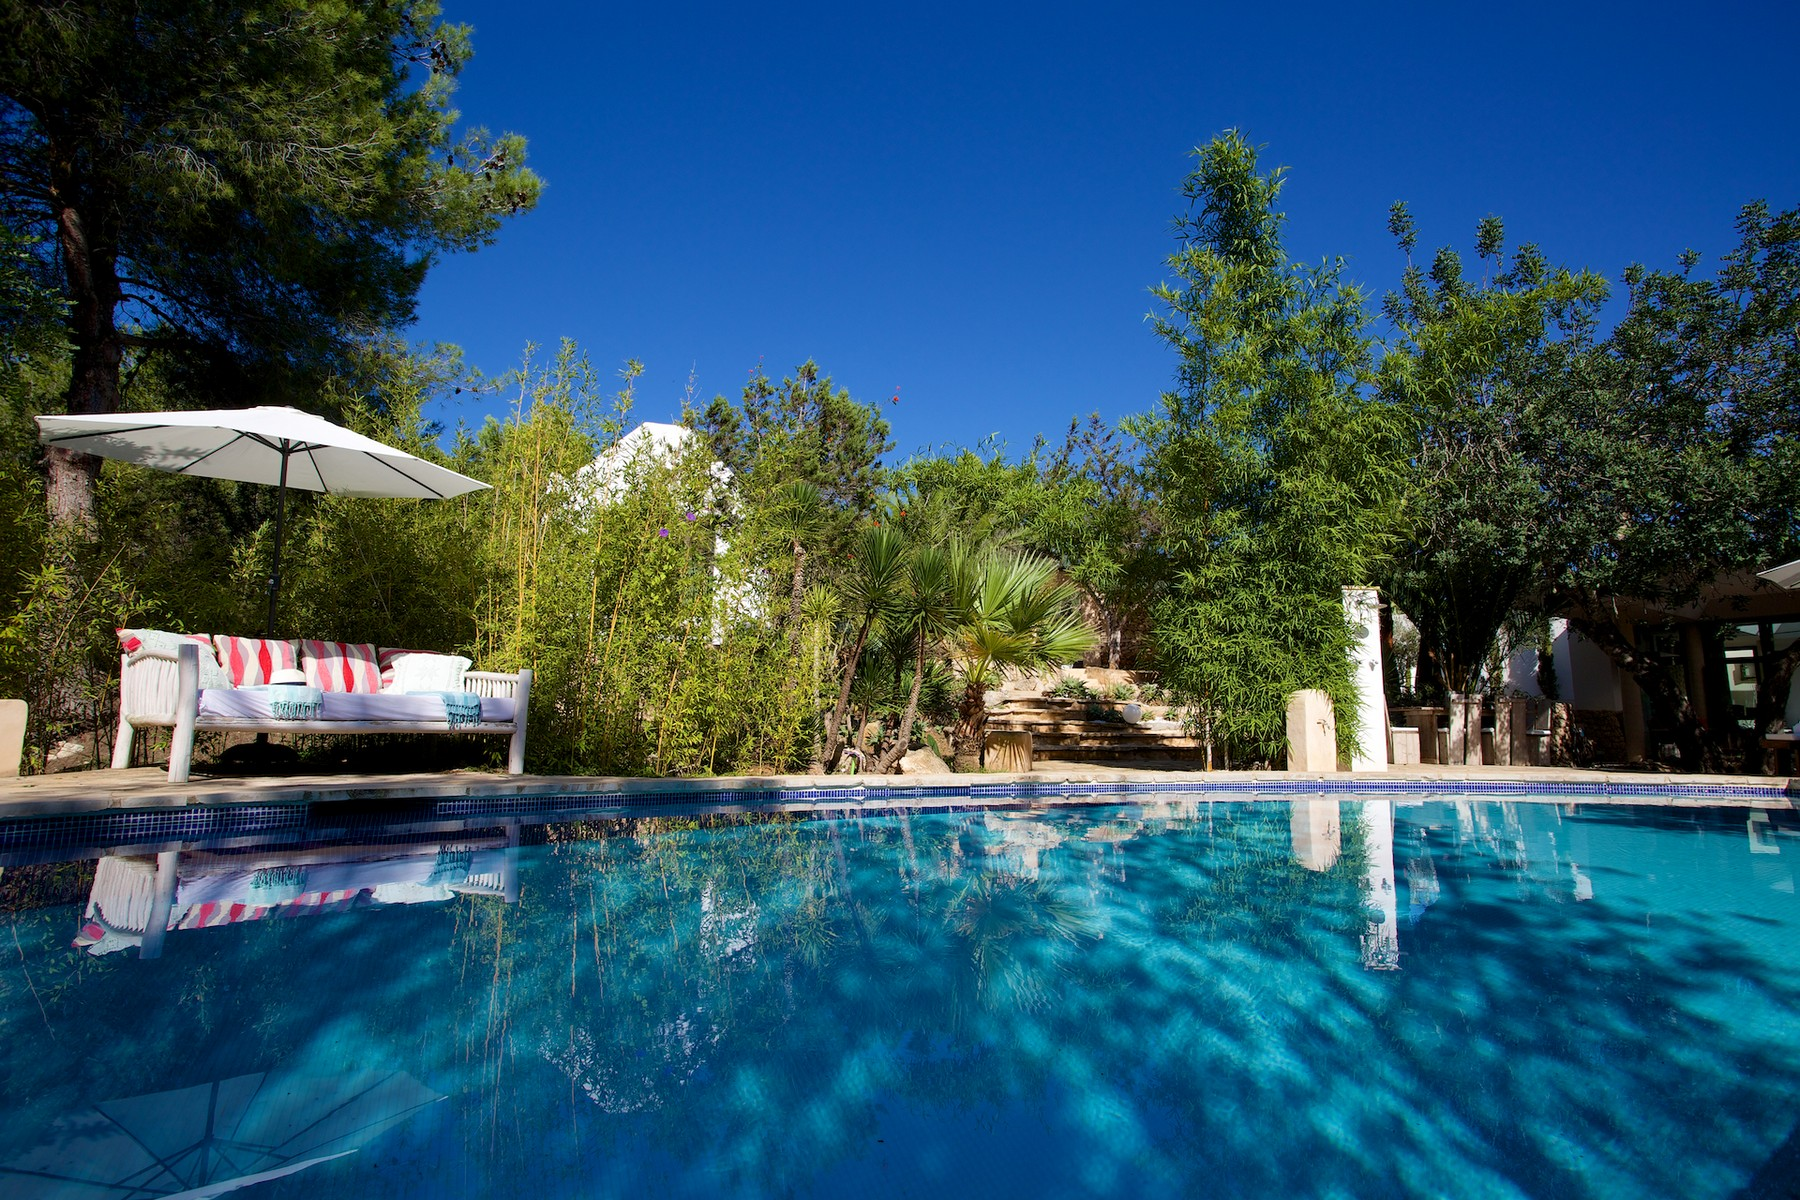 Casa Unifamiliar por un Venta en Charming 160 Years Old Renovated Finca Ibiza, Ibiza, 07819 España